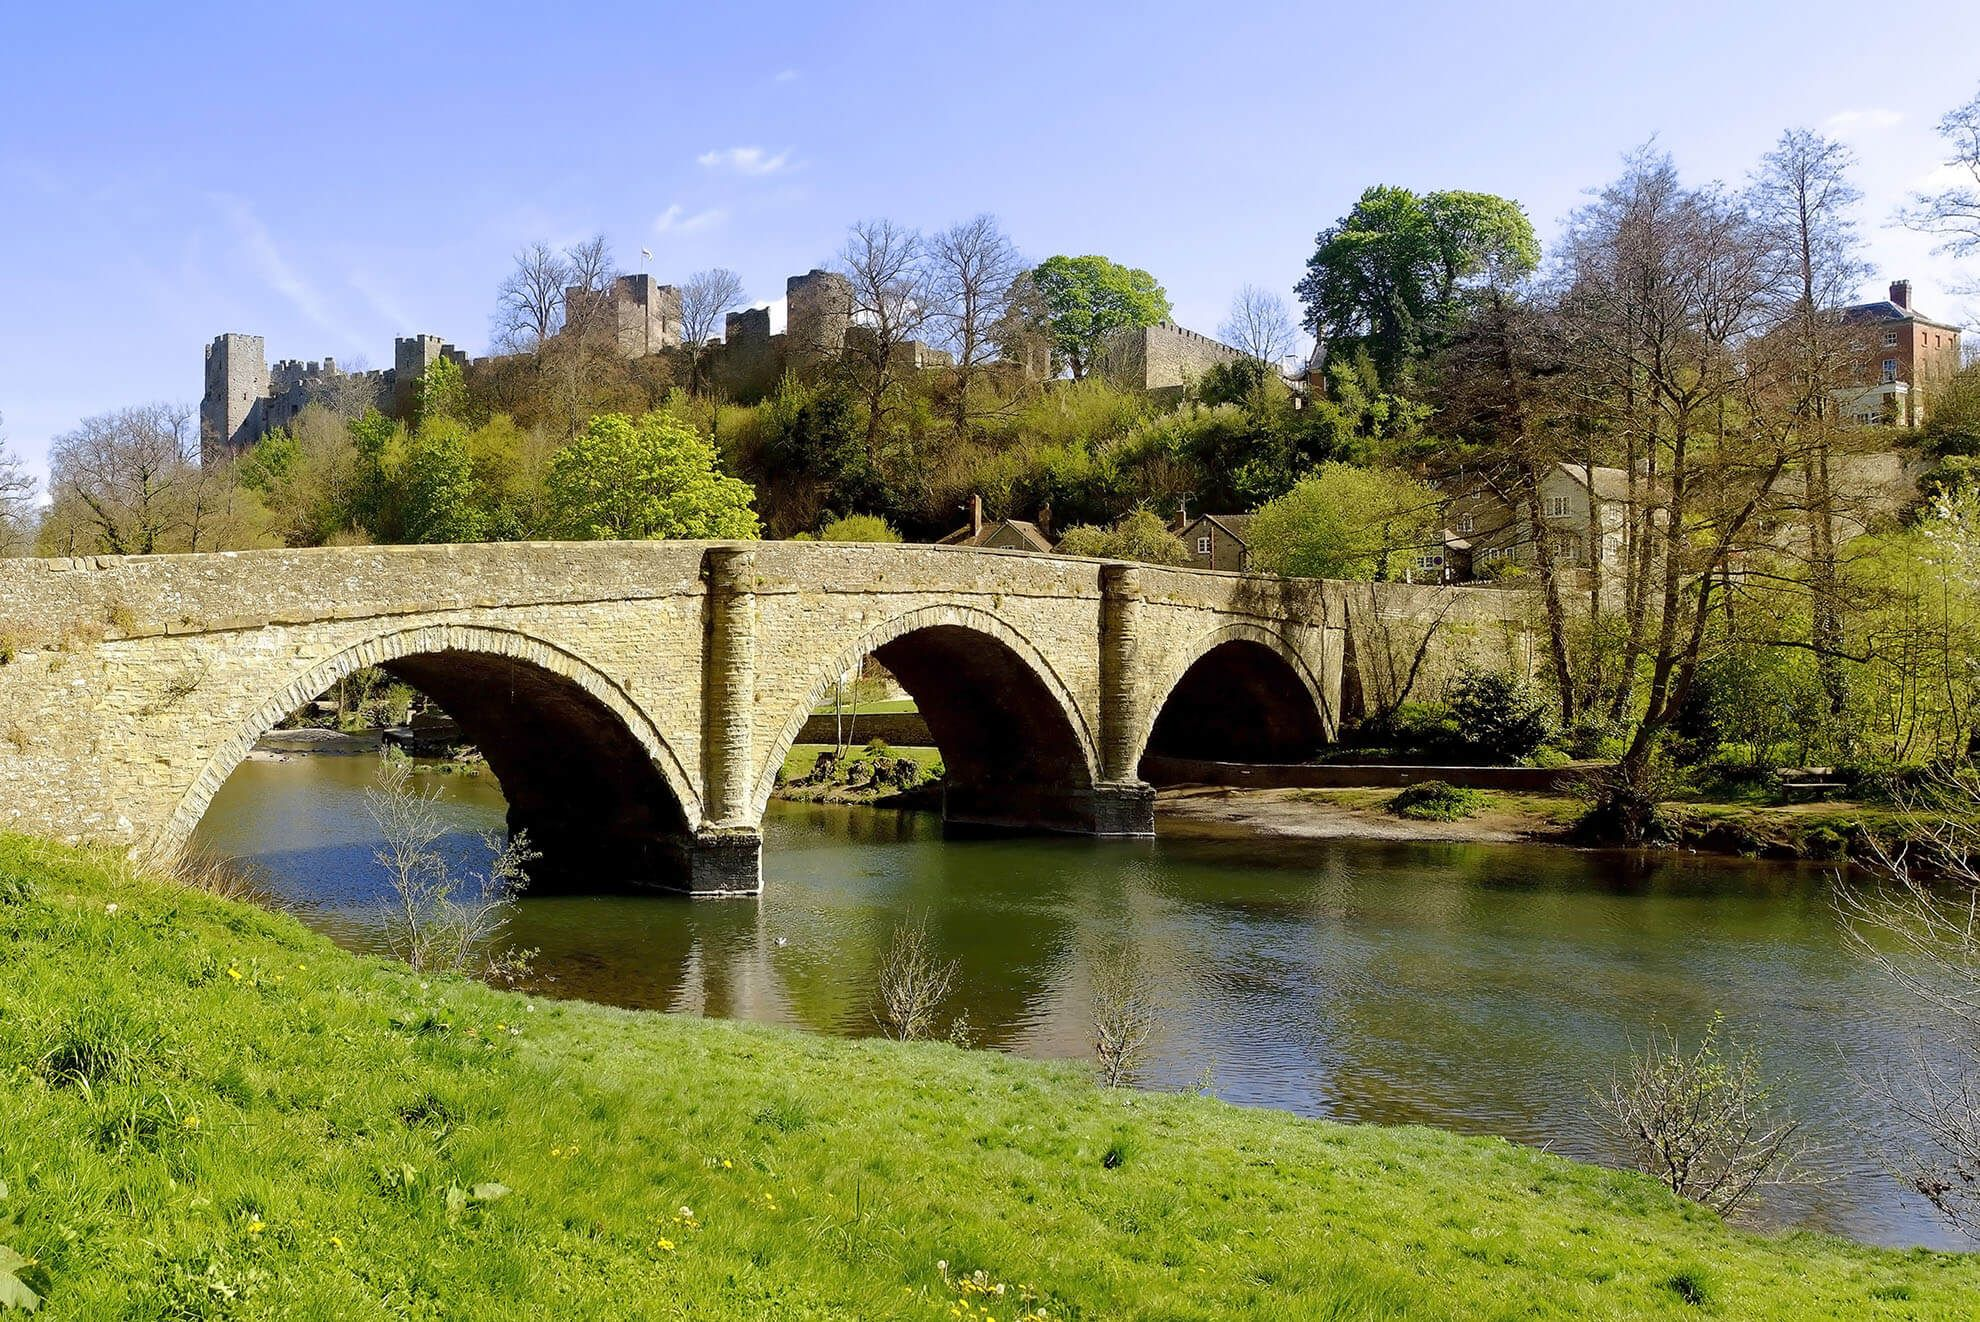 Ludlow, nestled in an Area of Outstanding Natural Beauty, is one of the loveliest town in England